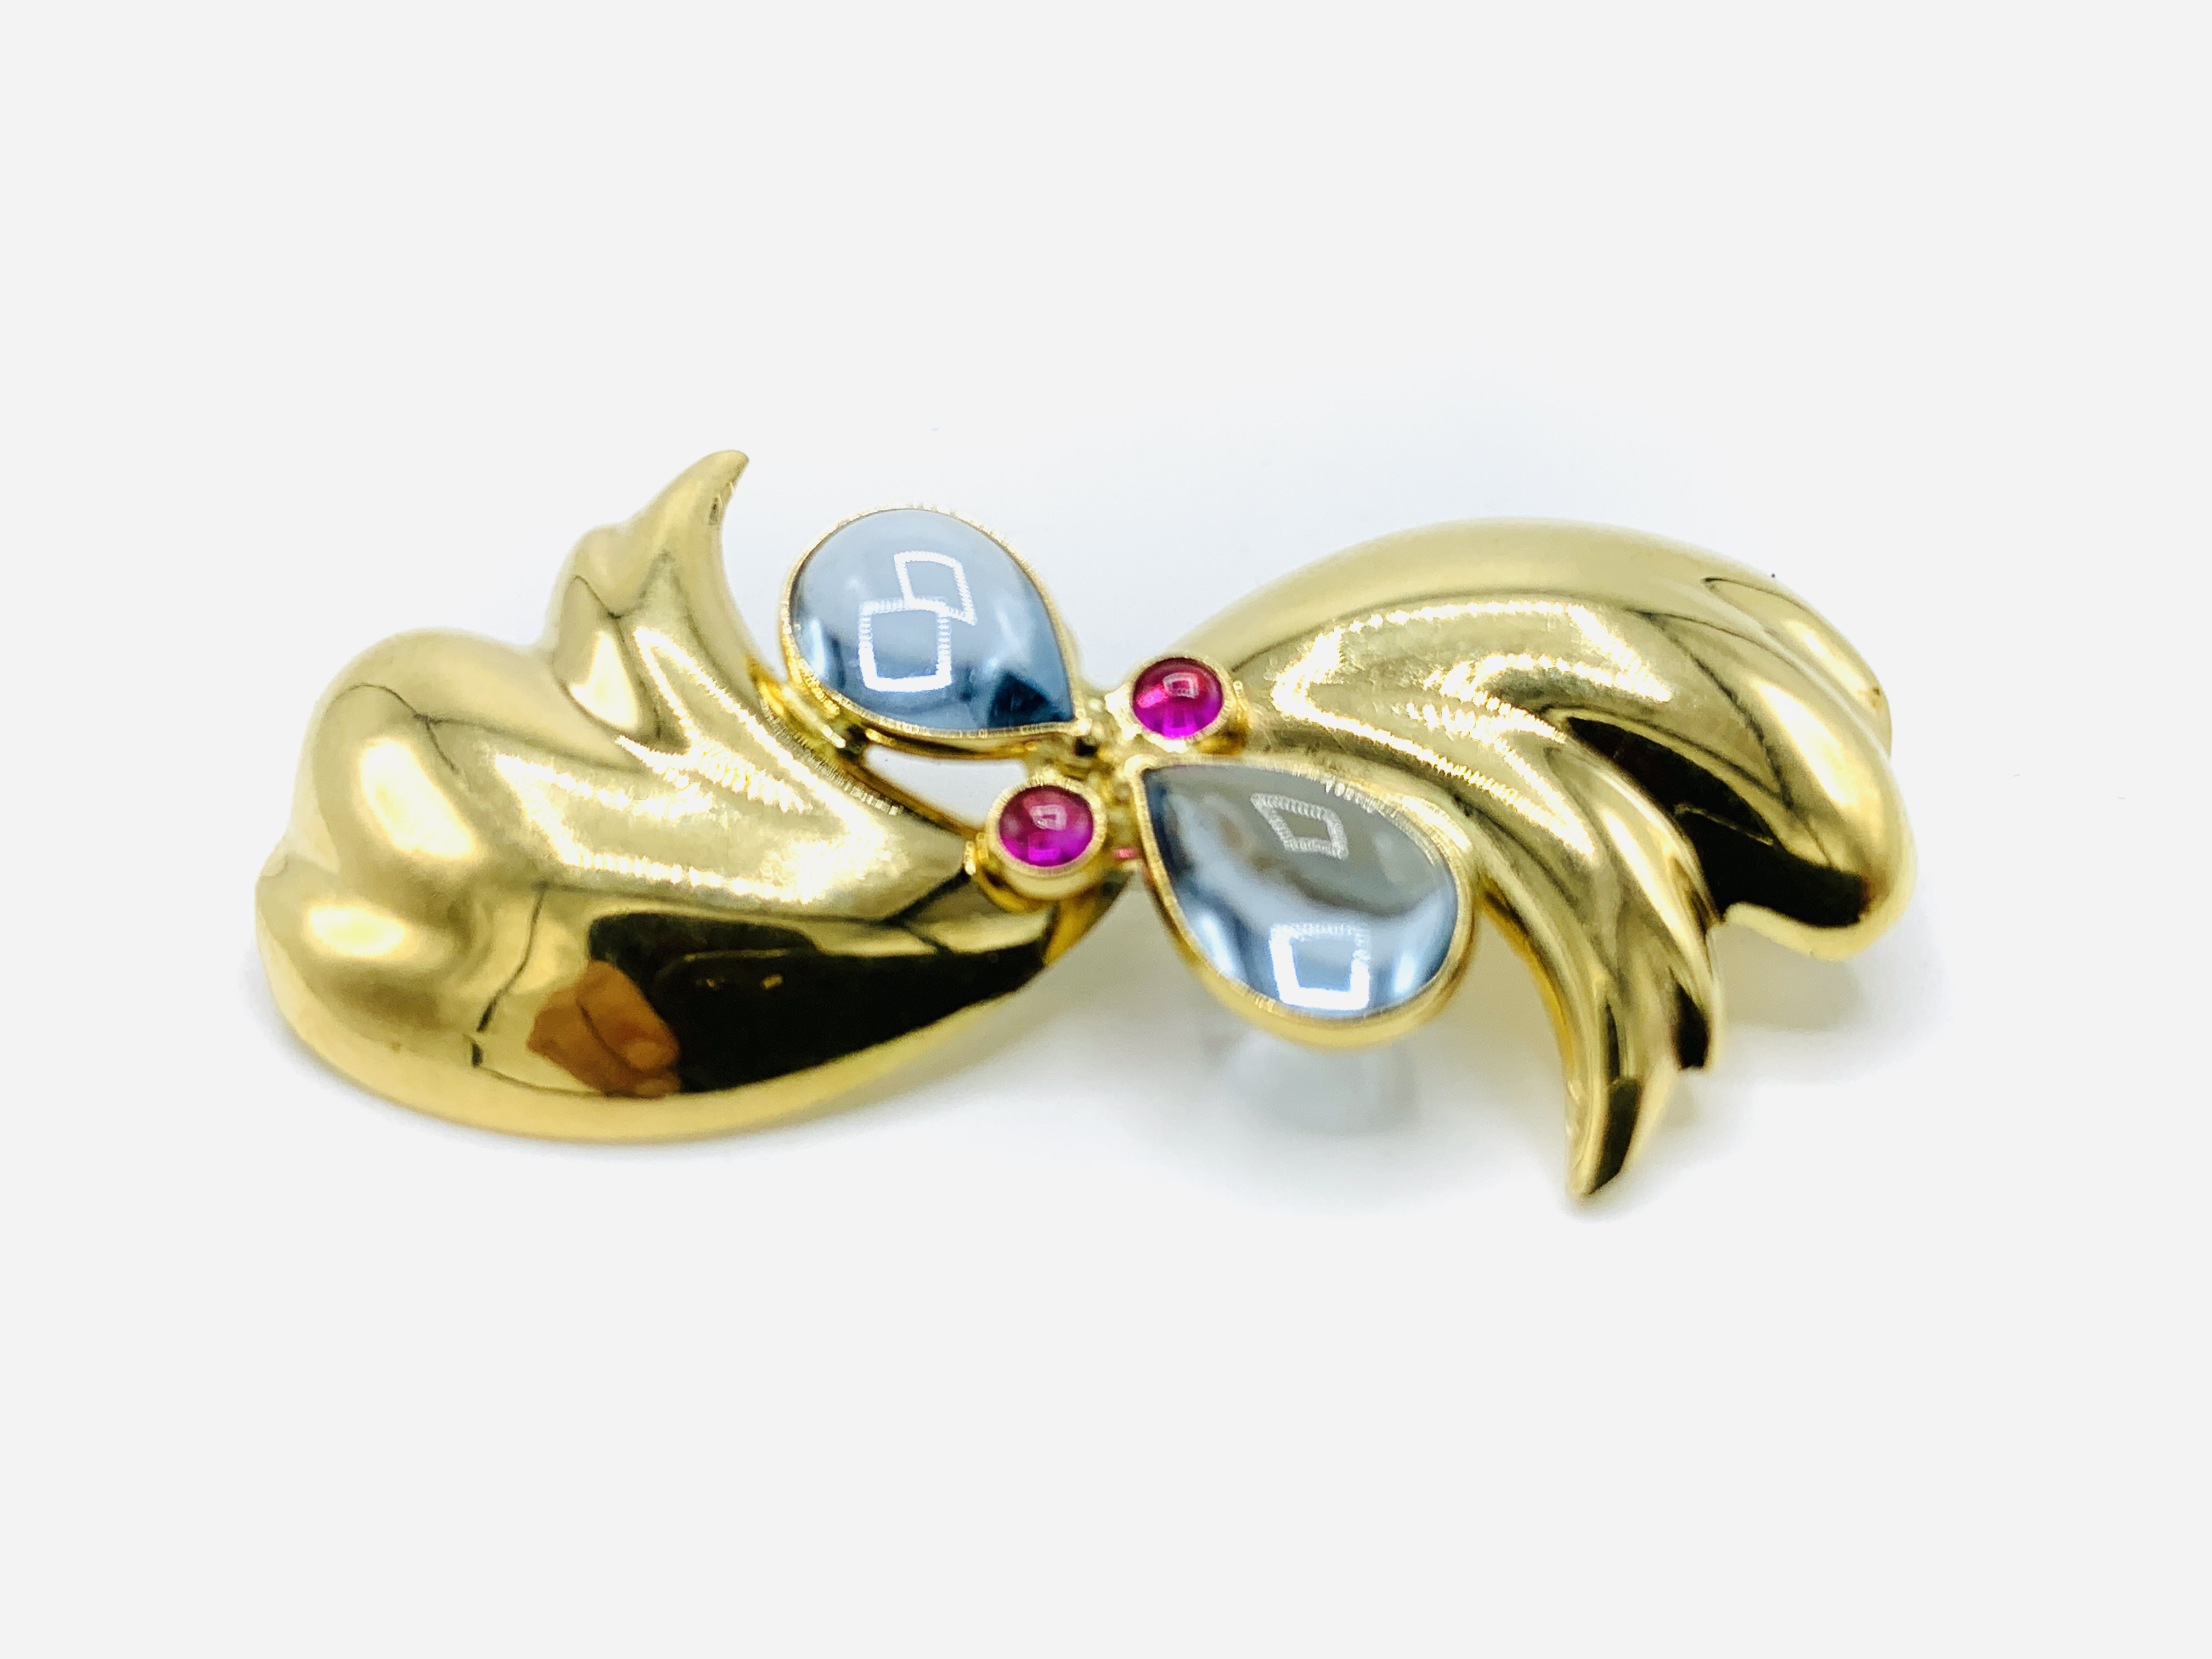 Contemporary 18ct gold brooch set with aquamarine cabochons and rubies - Image 2 of 3